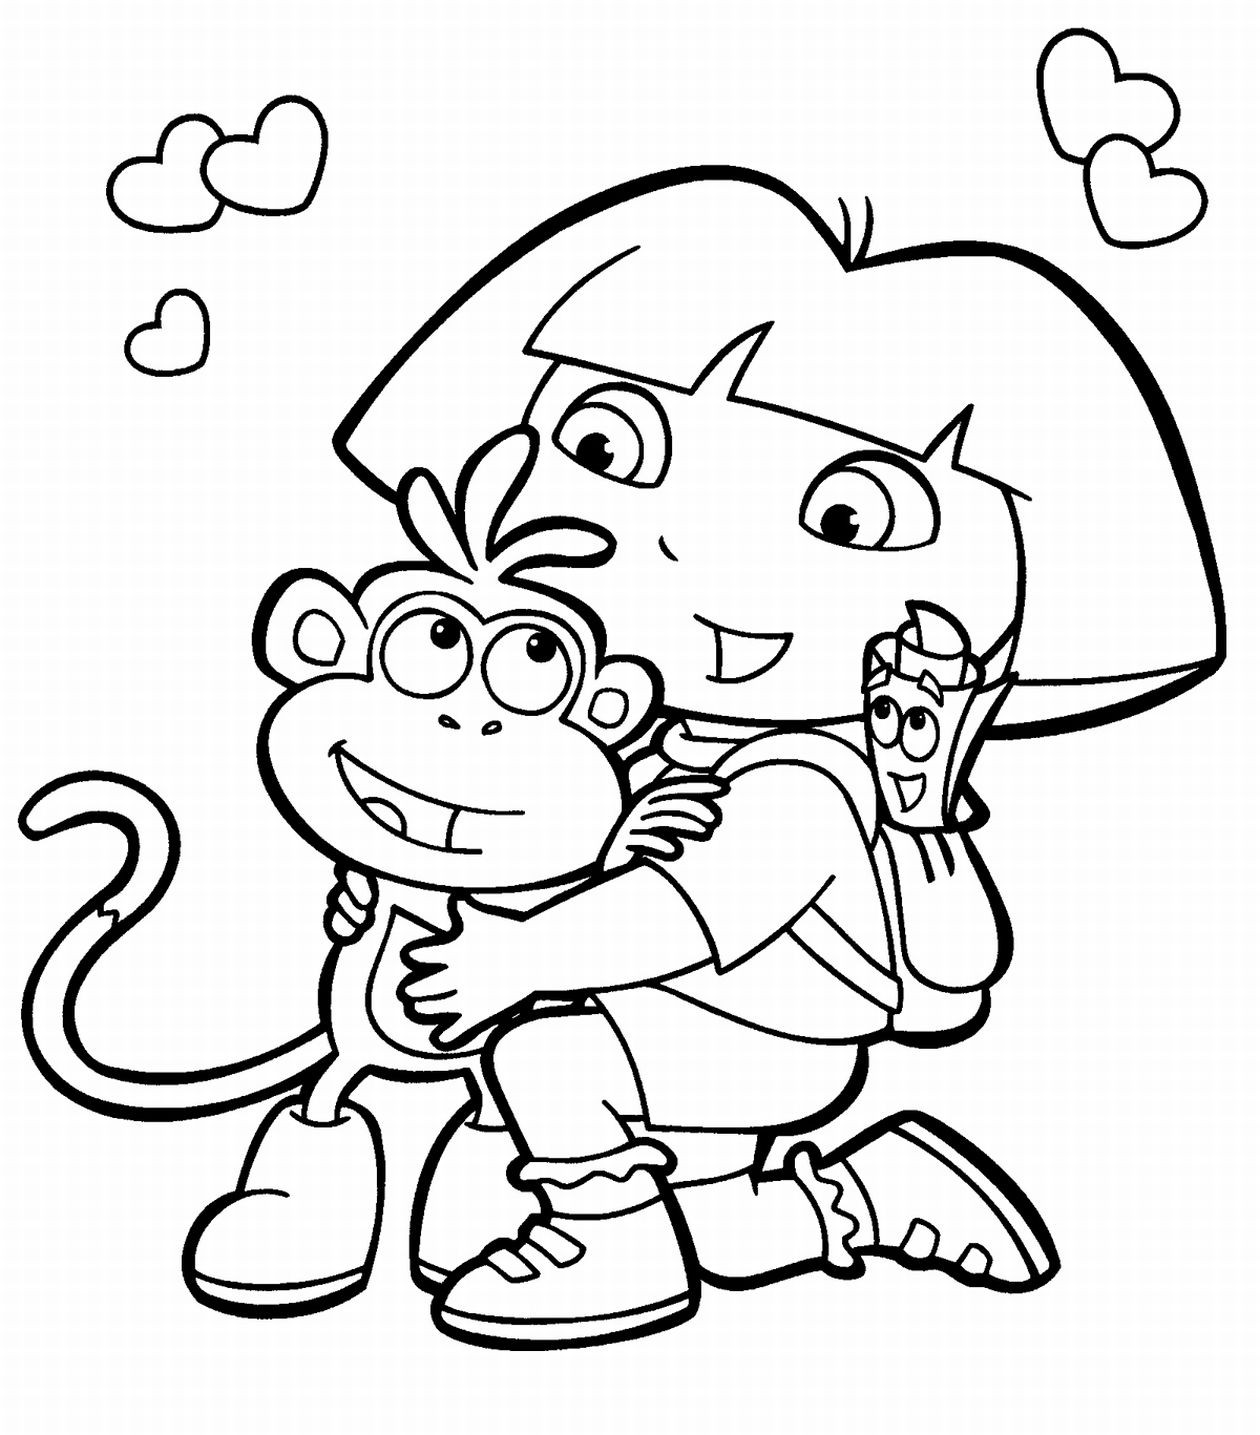 1260x1435 Opportunities Colouring Pictures Of Children Printable Kids